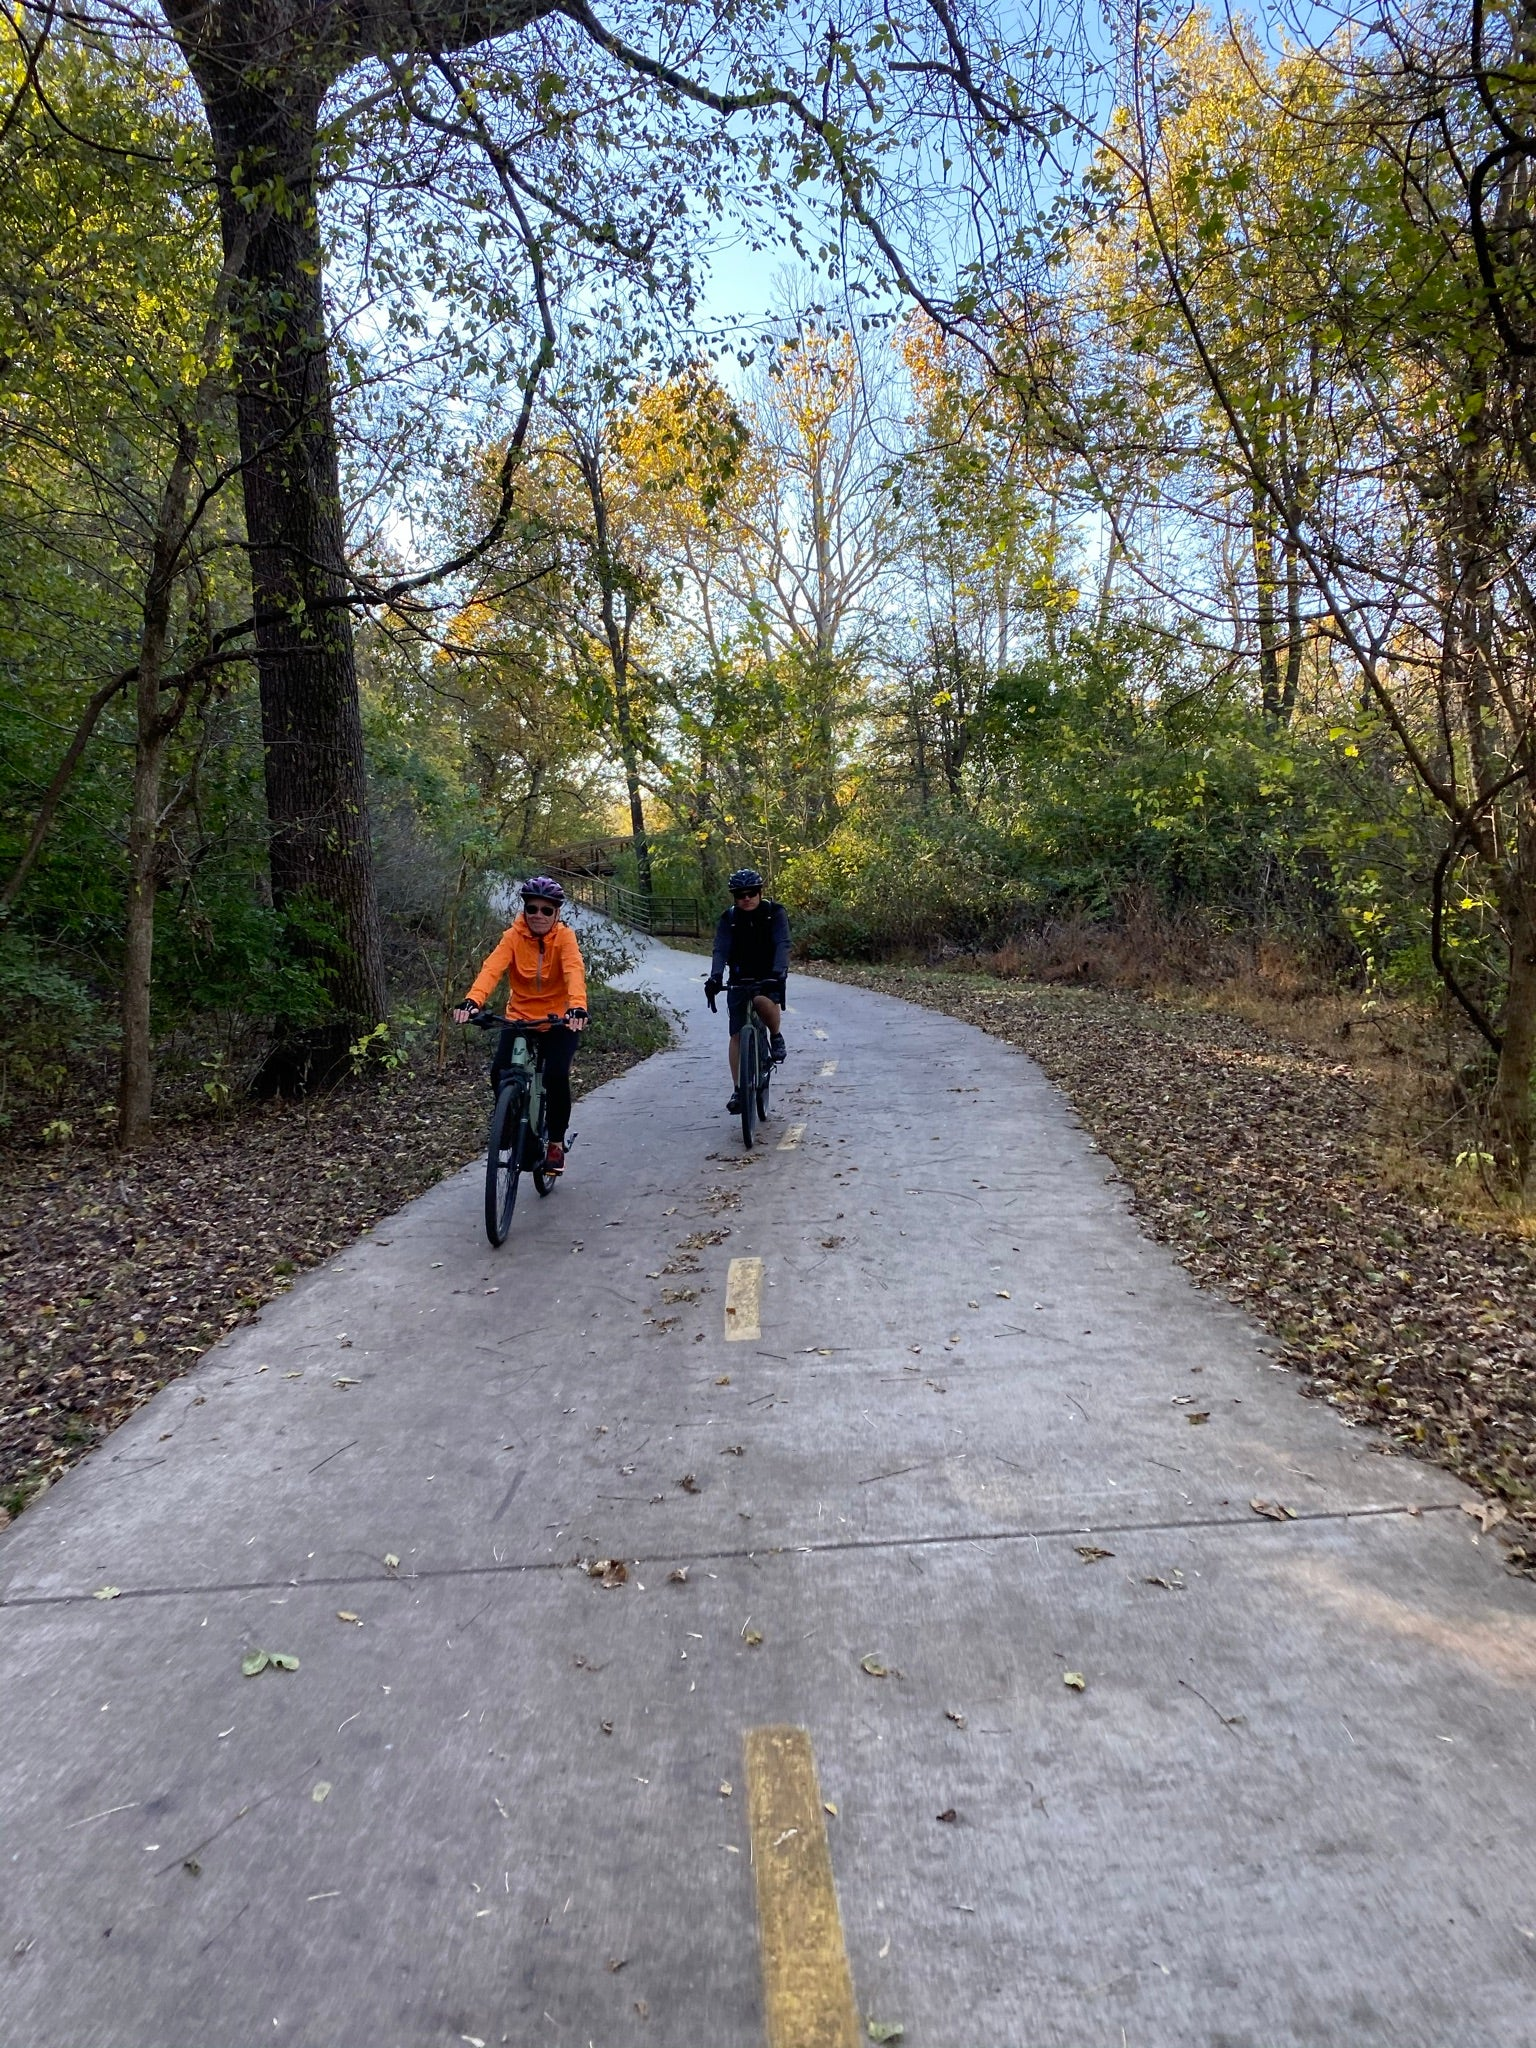 Private biking tour in Bentonville